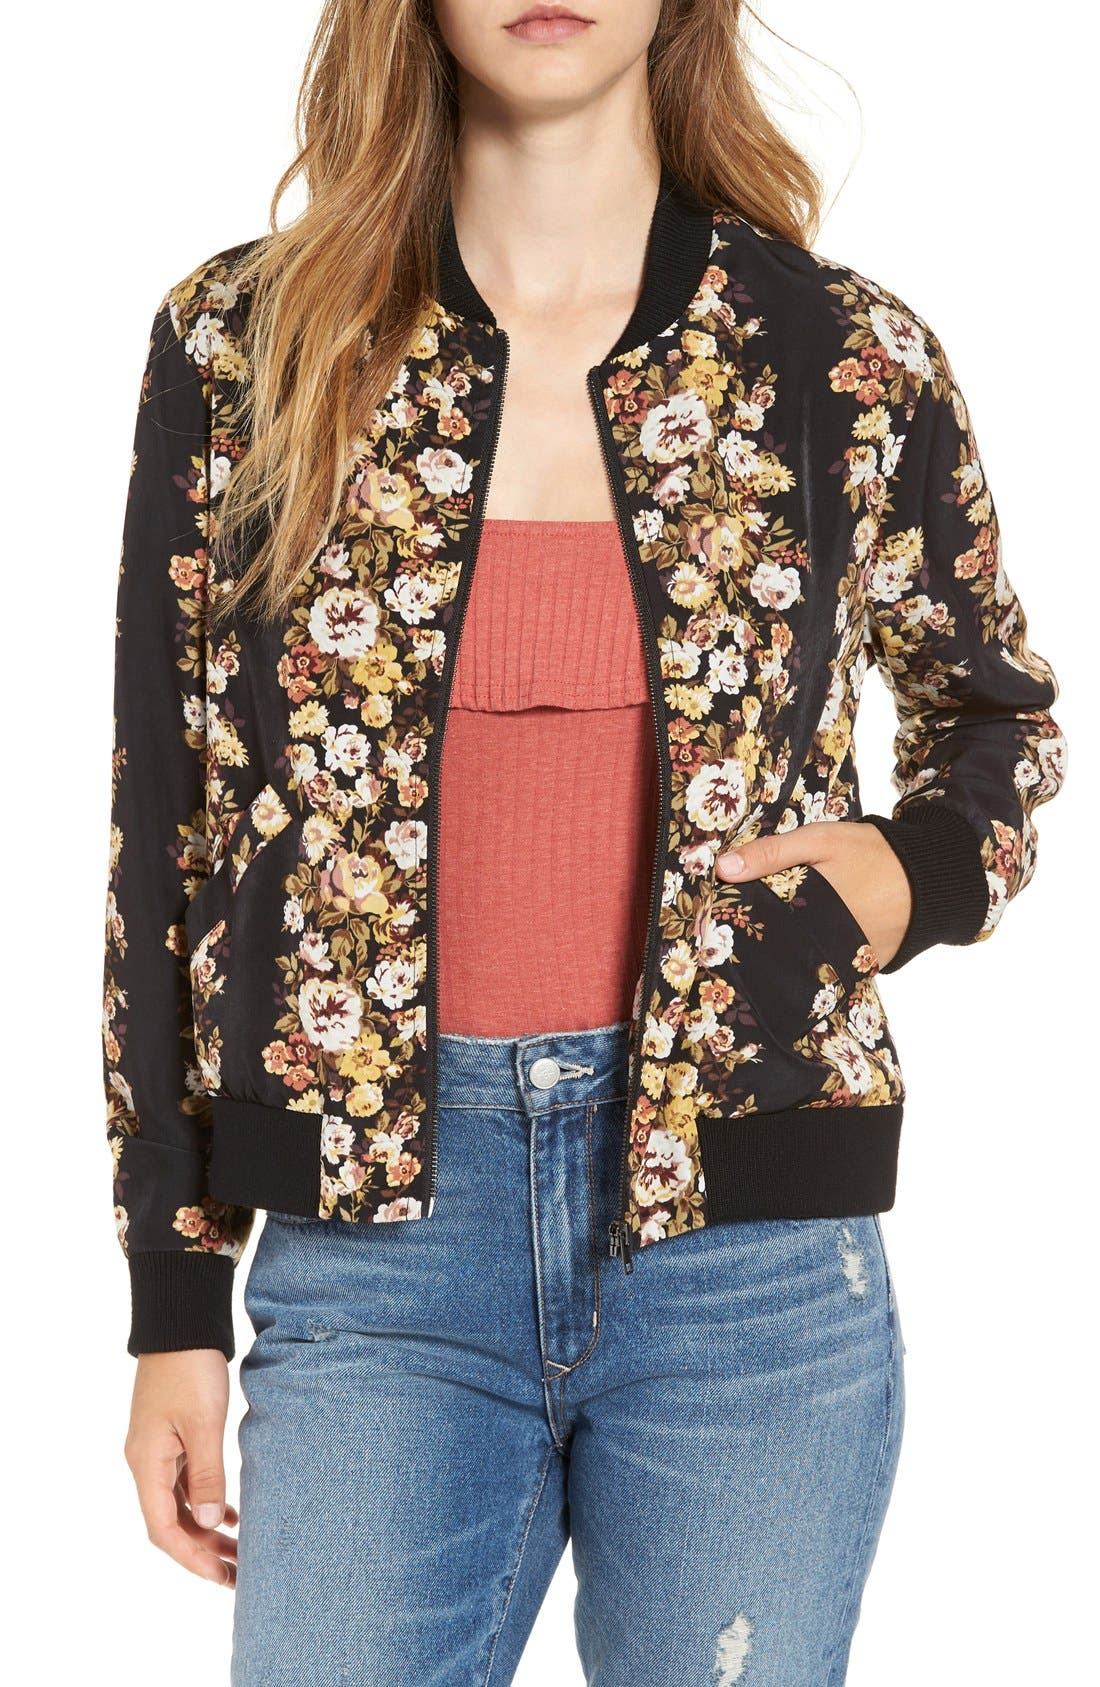 Alternate Image 1 Selected - Wayf Floral Print Bomber Jacket